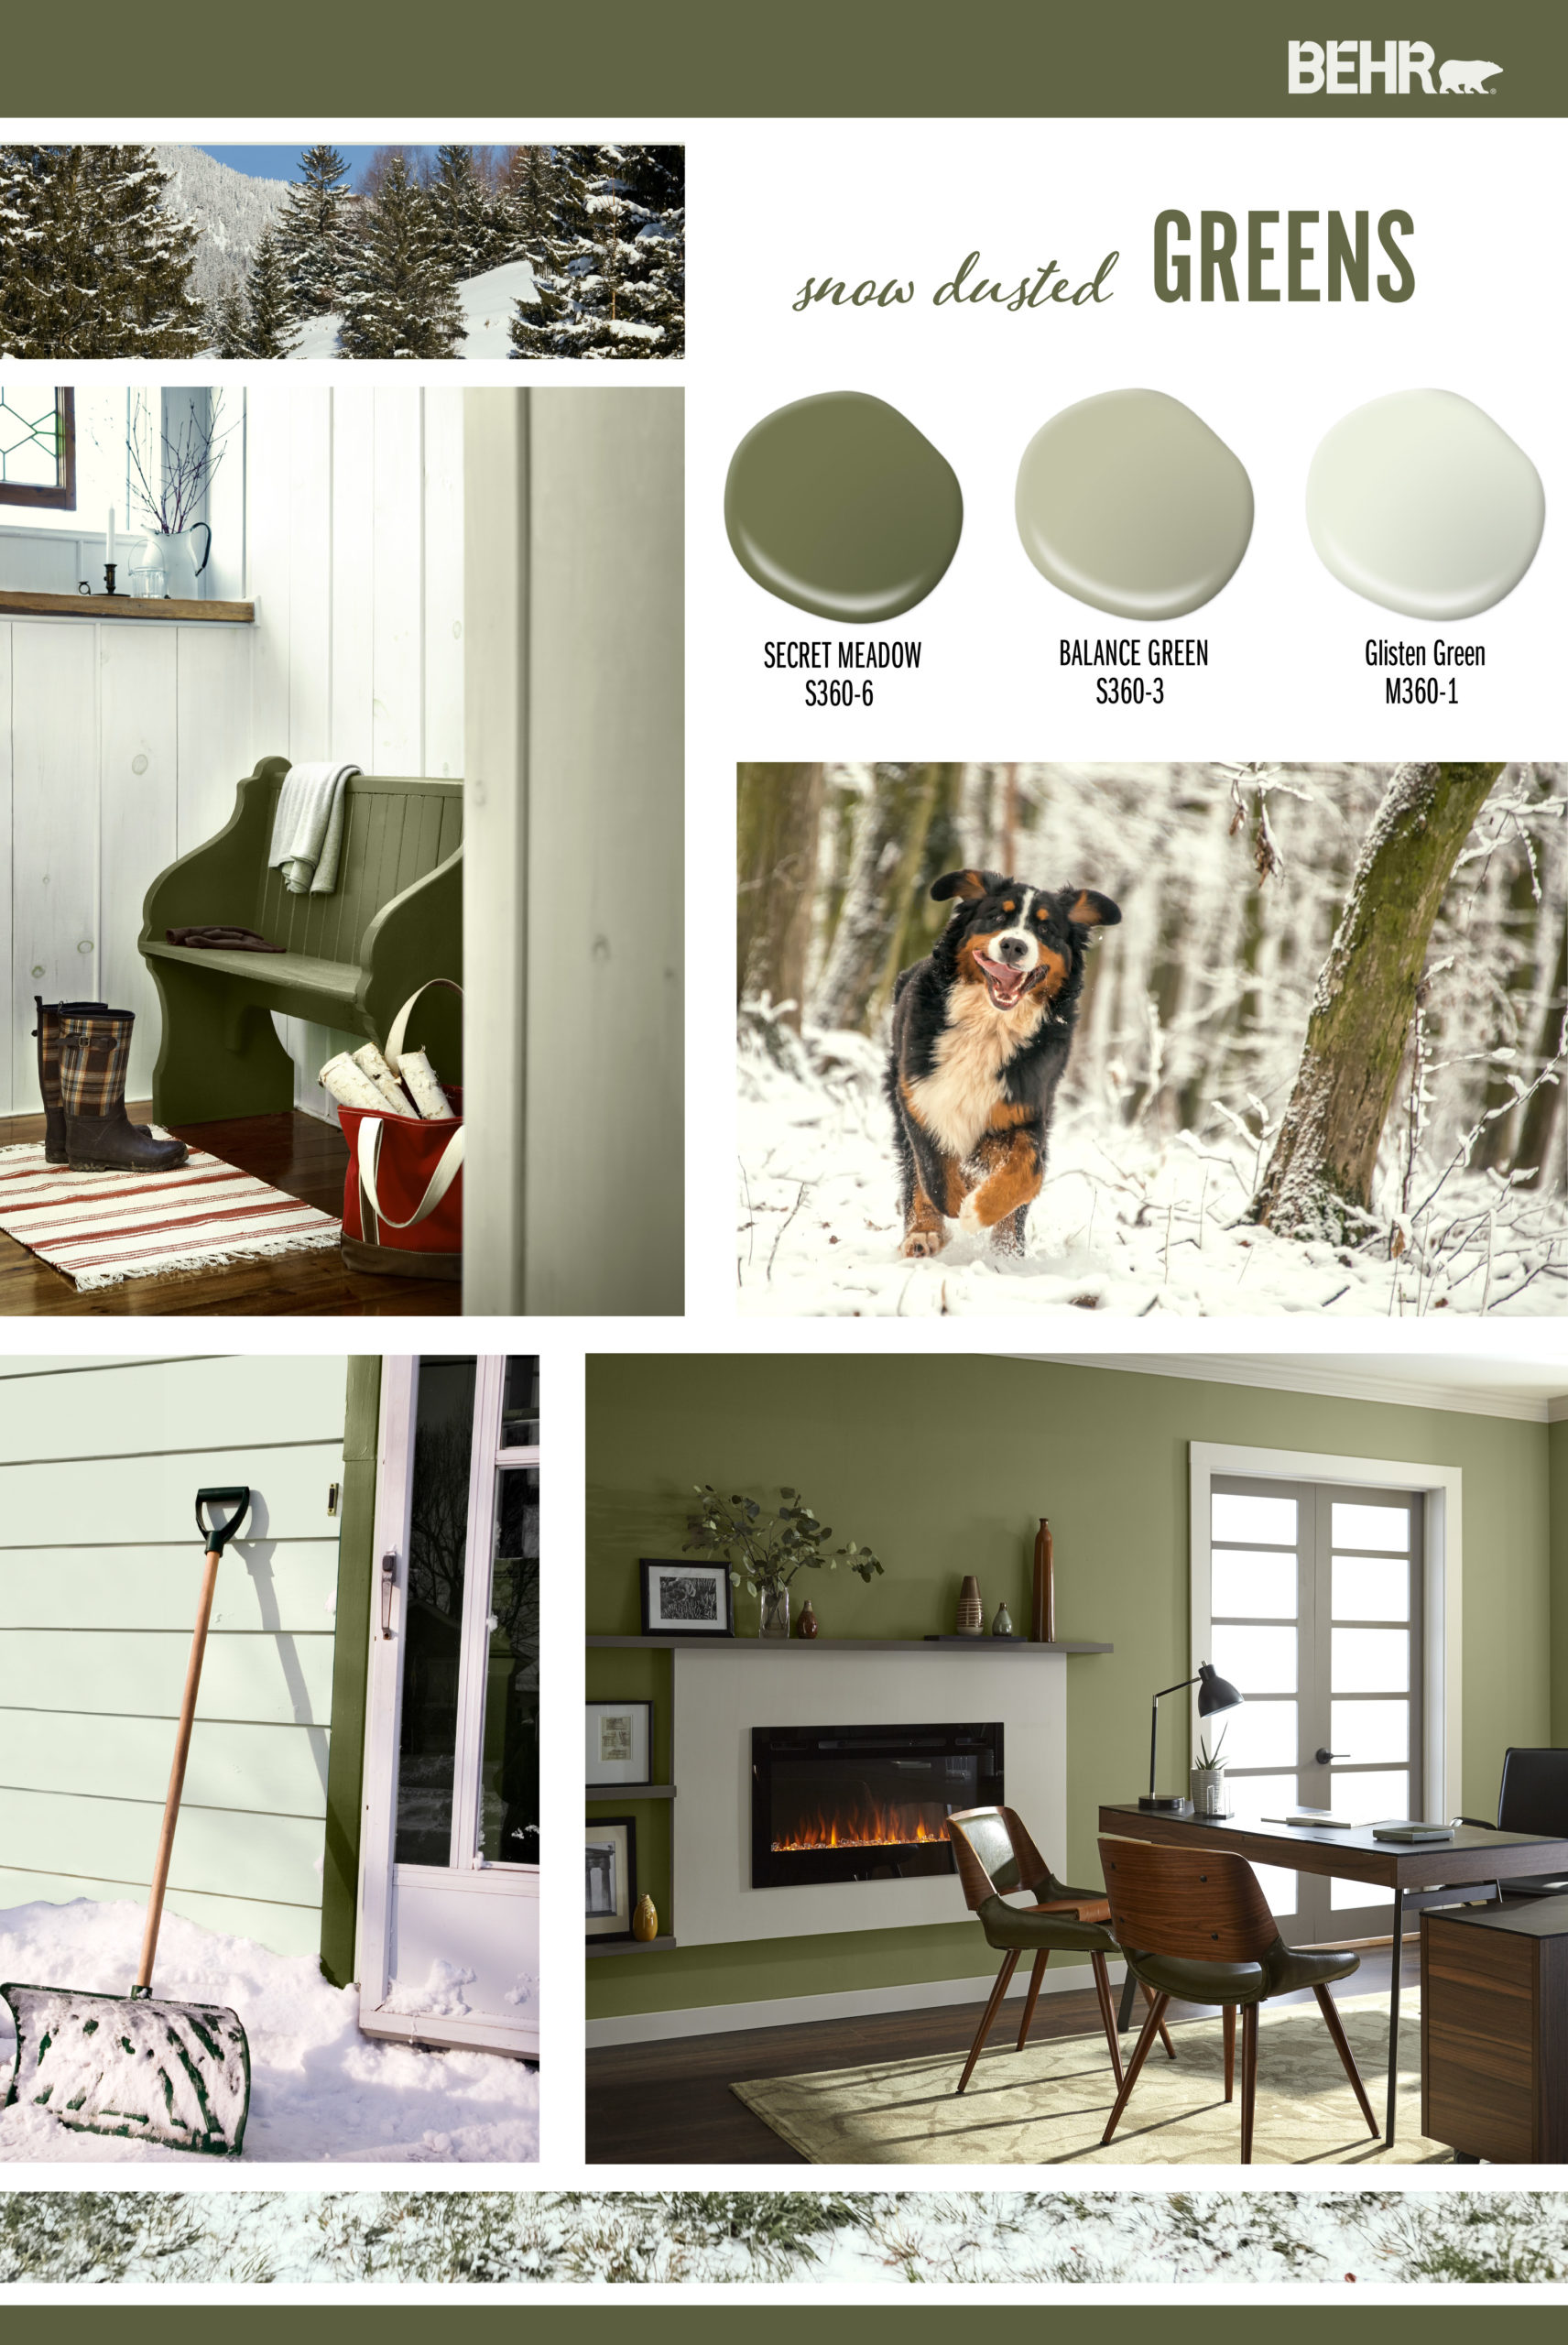 Inspiration Board featuring three green paint drops: Secret Meadow, Balance Green, Glisten Green Images shown are the following: -A forest of snow-covered pine trees. -Interior mud room with a bench painted in Secret Meadow and walls painted in Glisten Green and Balance Green. A red striped rug is placed on the ground with plaid snow boot and a red tote holding tree logs for a fireplace. -A dog running in snow-covered woods. -A tight crop of the side of an exterior home painted in Glisten Green and trim in Secret Meadow. A snow shovel is leaning against the home. -A large home office with a lit fireplace. The walls are painted in Secret Meadow.